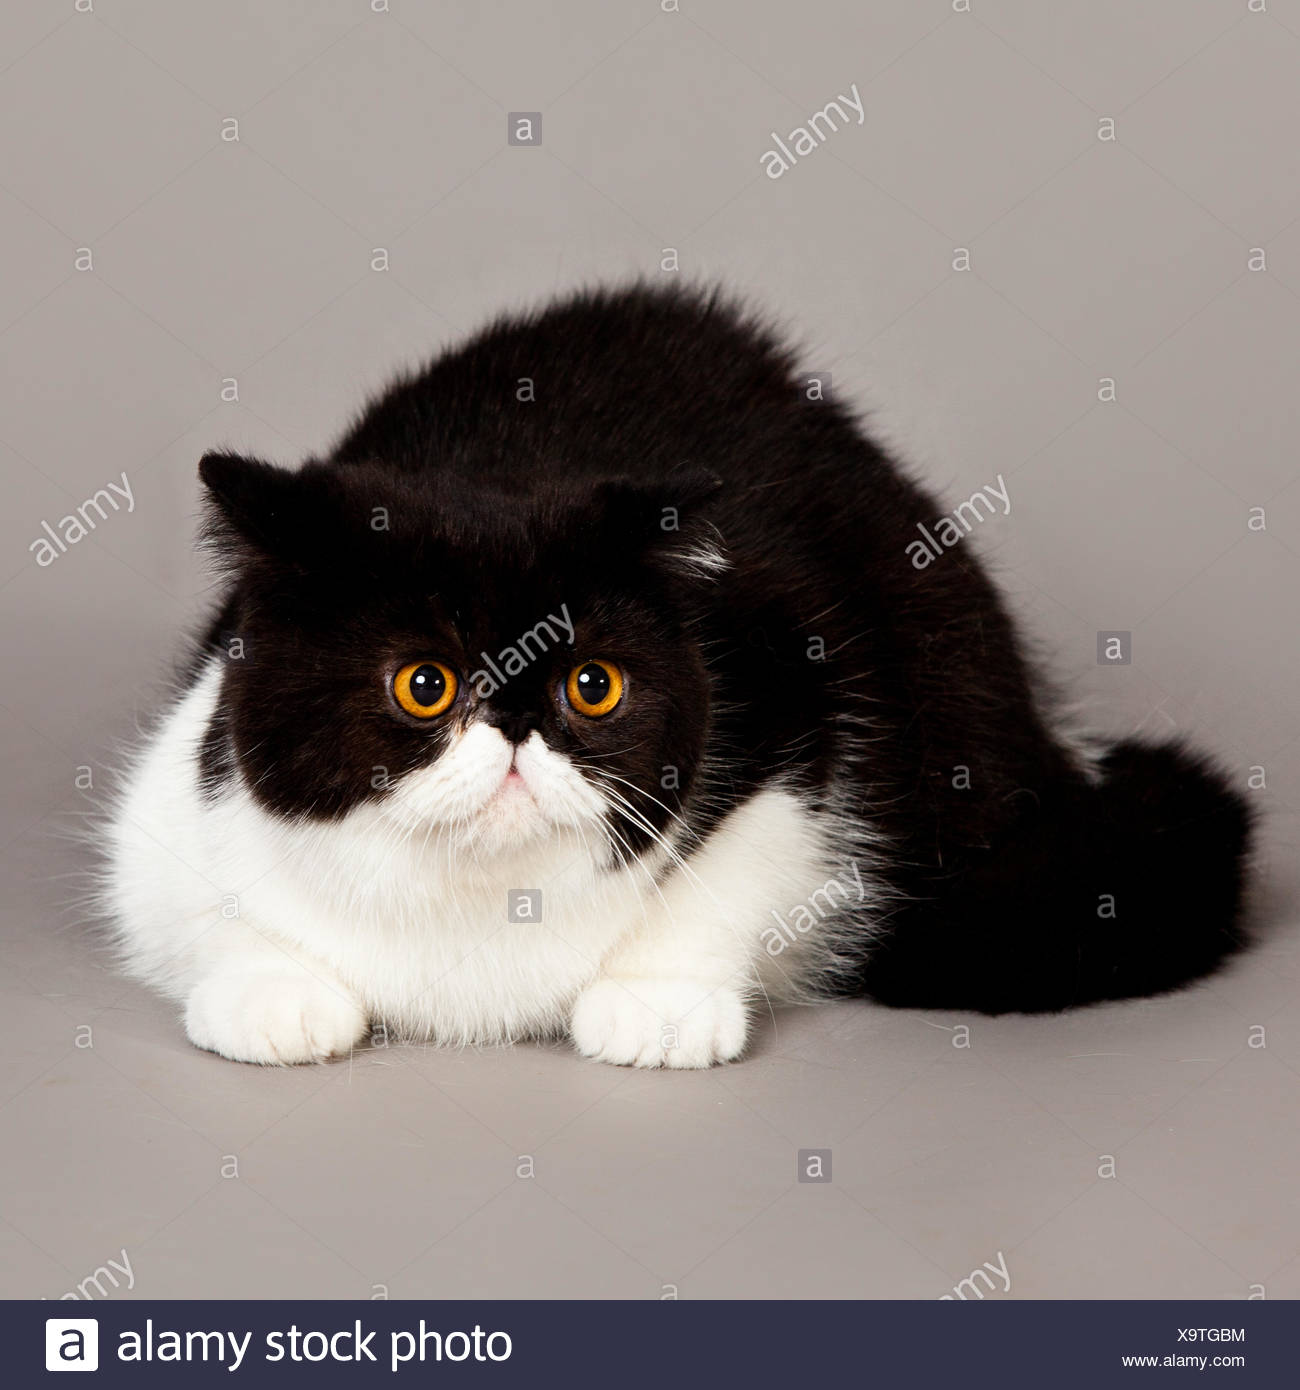 Exotic Shorthair Cat Stock Photos & Exotic Shorthair Cat Stock